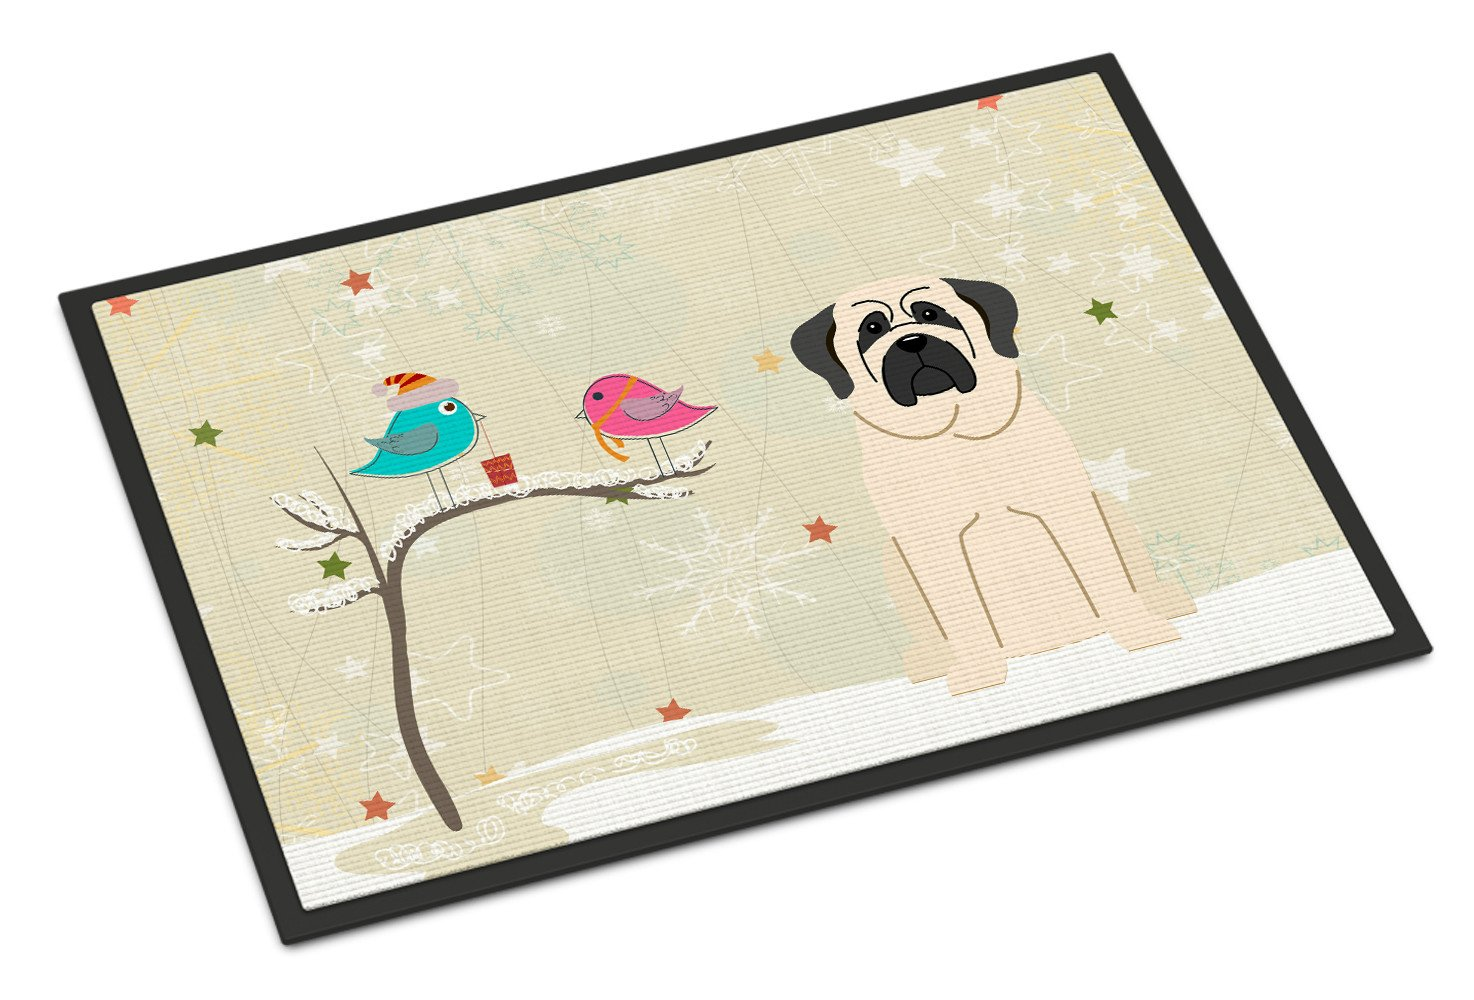 Christmas Presents between Friends Mastiff White Indoor or Outdoor Mat 24x36 BB2489JMAT - the-store.com